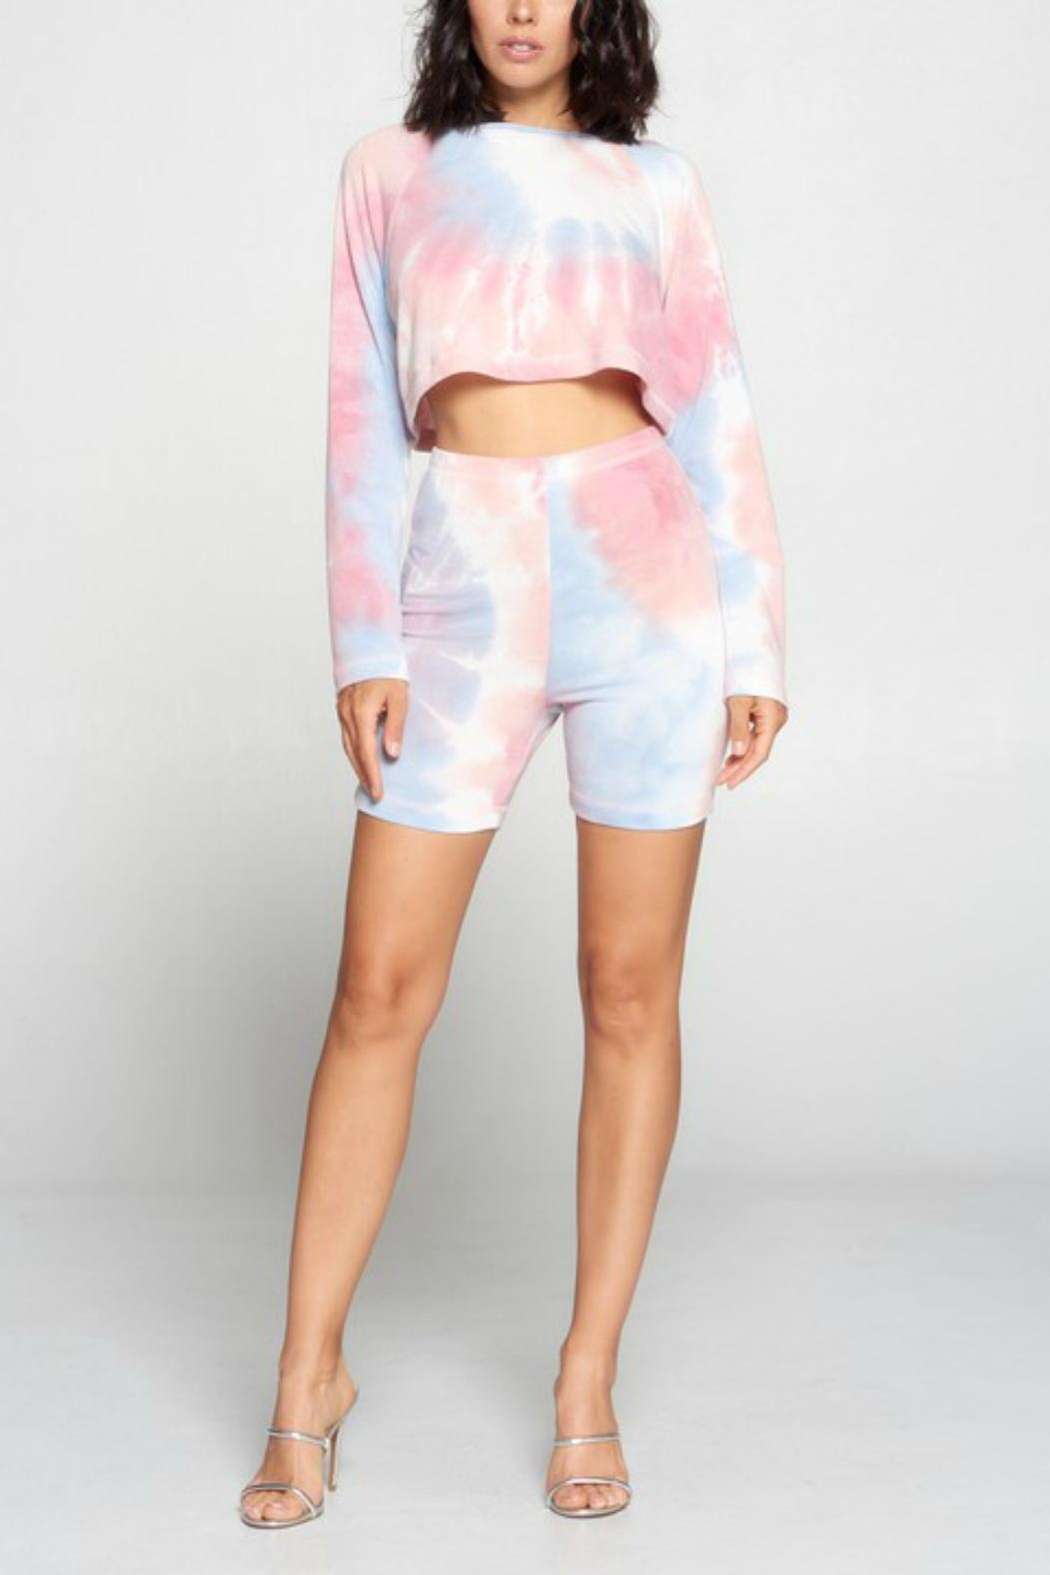 Pretty Little Things Tie Dye Shorts - Front Full Image